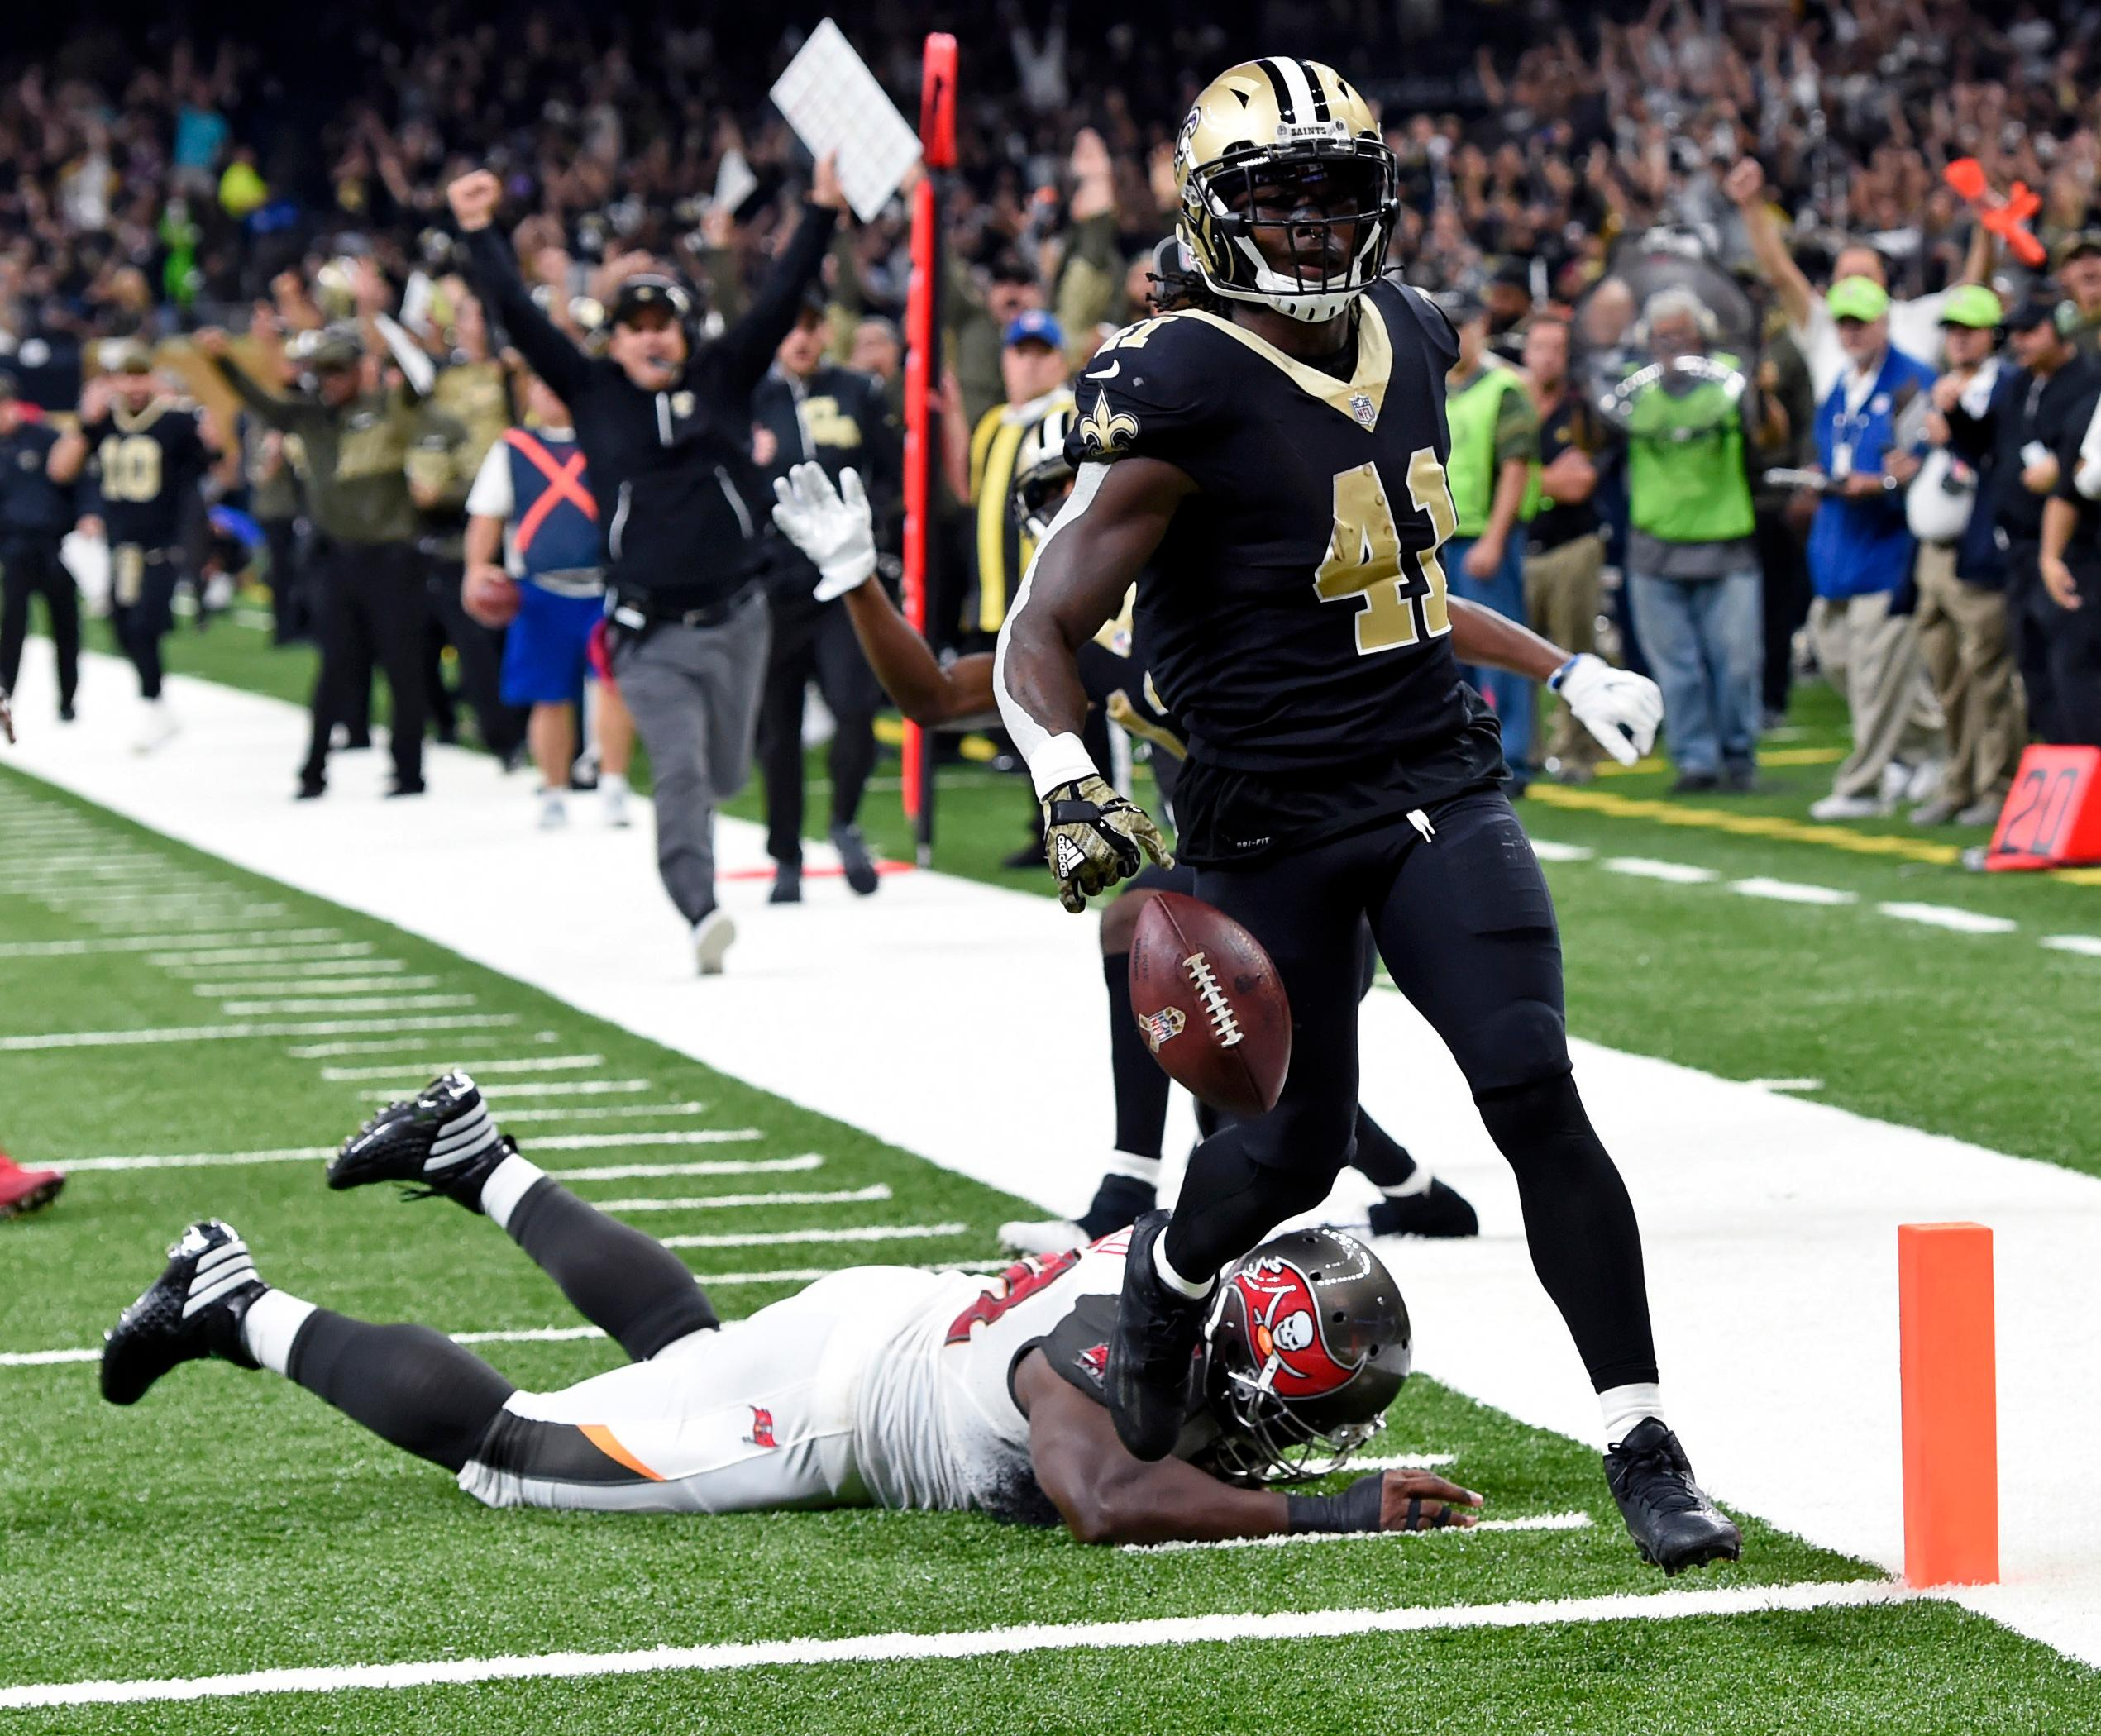 FILE - In this Sunday, Nov. 5, 2017, file photo, New Orleans Saints running back Alvin Kamara (41) carries for a touchdown past a diving Tampa Bay Buccaneers defensive tackle Clinton McDonald in the first half of an NFL football game in New Orleans. Texans quarterback Deshaun Watson probably had surpassed Kareem Hunt, Leonard Fournette and Alvin Kamara when he went down before Week 9 with a torn ACL. That seems to put the race for this award in the cleats of those running backs.  (AP Photo/Bill Feig, File)